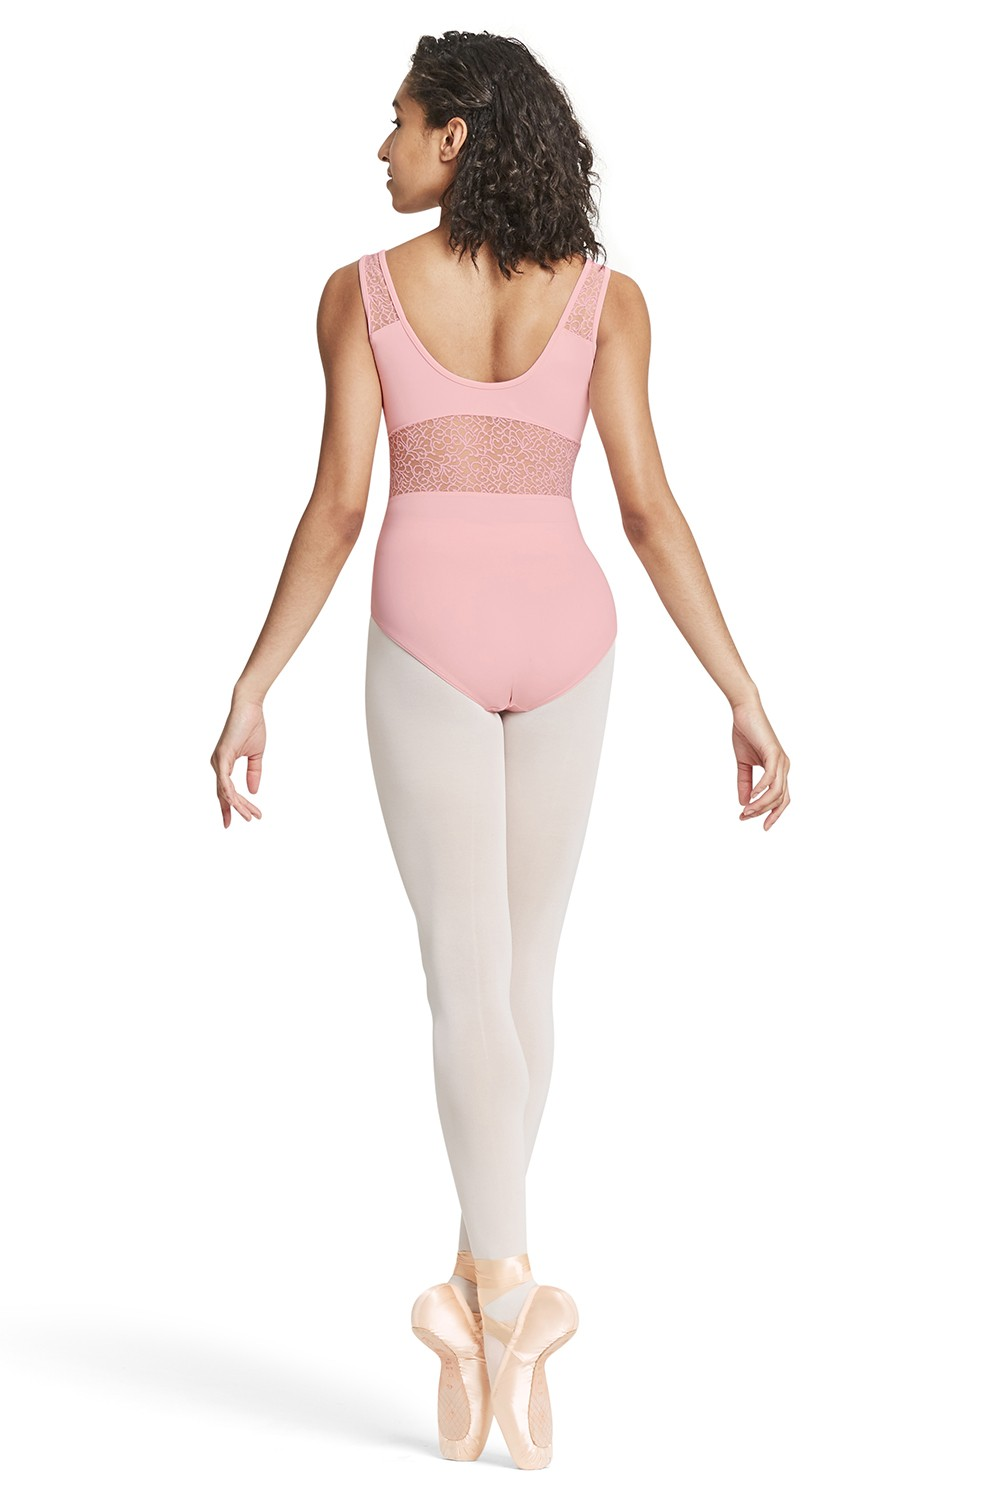 Mesh Panelled Tank Leotard - Tween Tween Dance Leotards